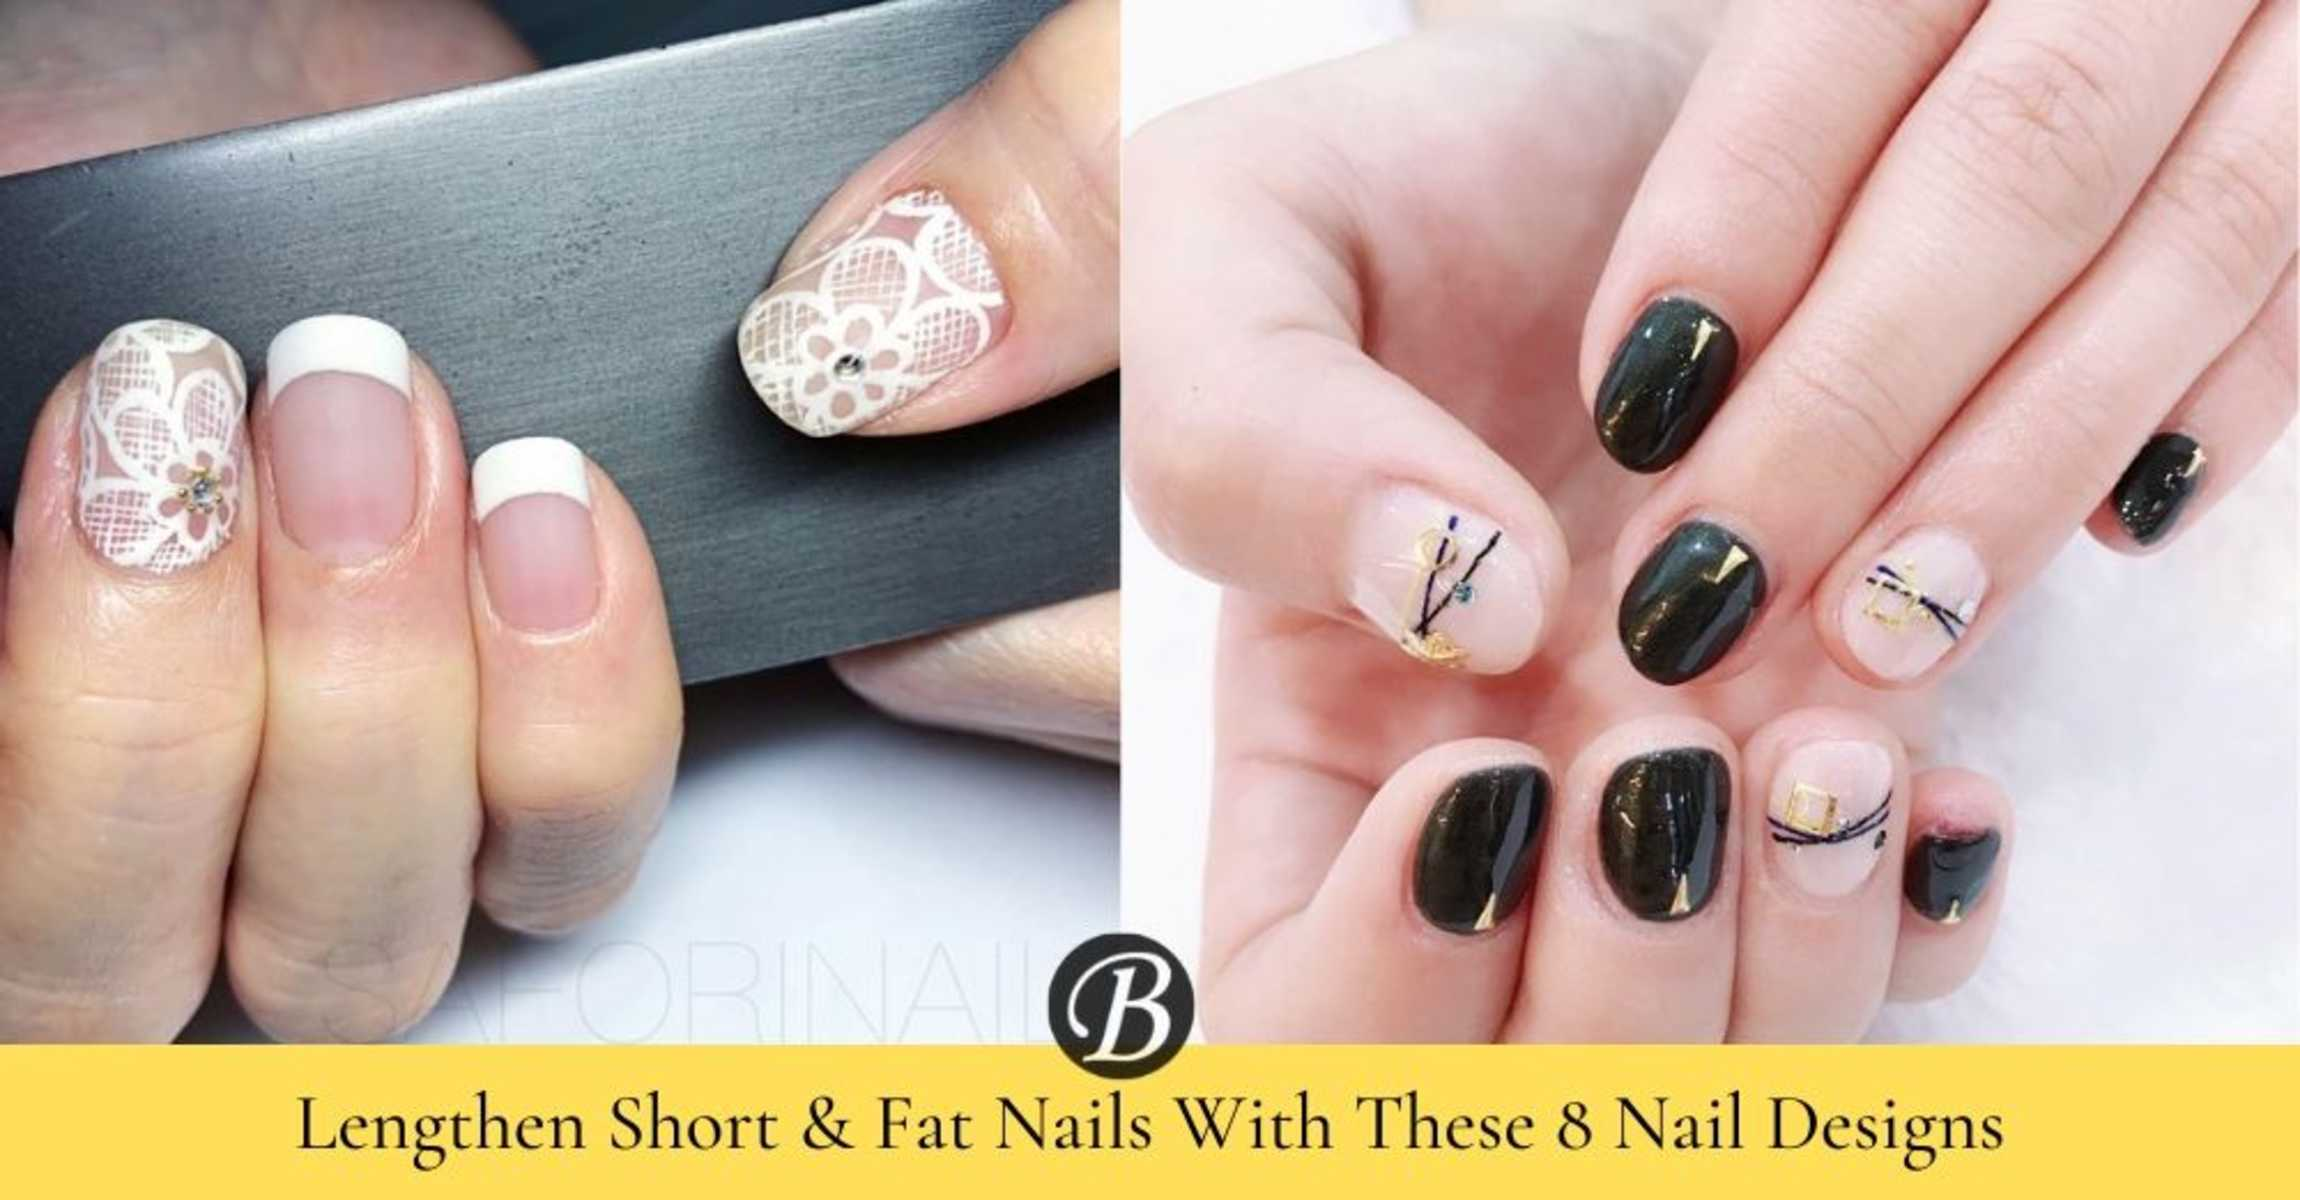 8 Best Nail Designs To Make Short And Fat Nails Look Longer